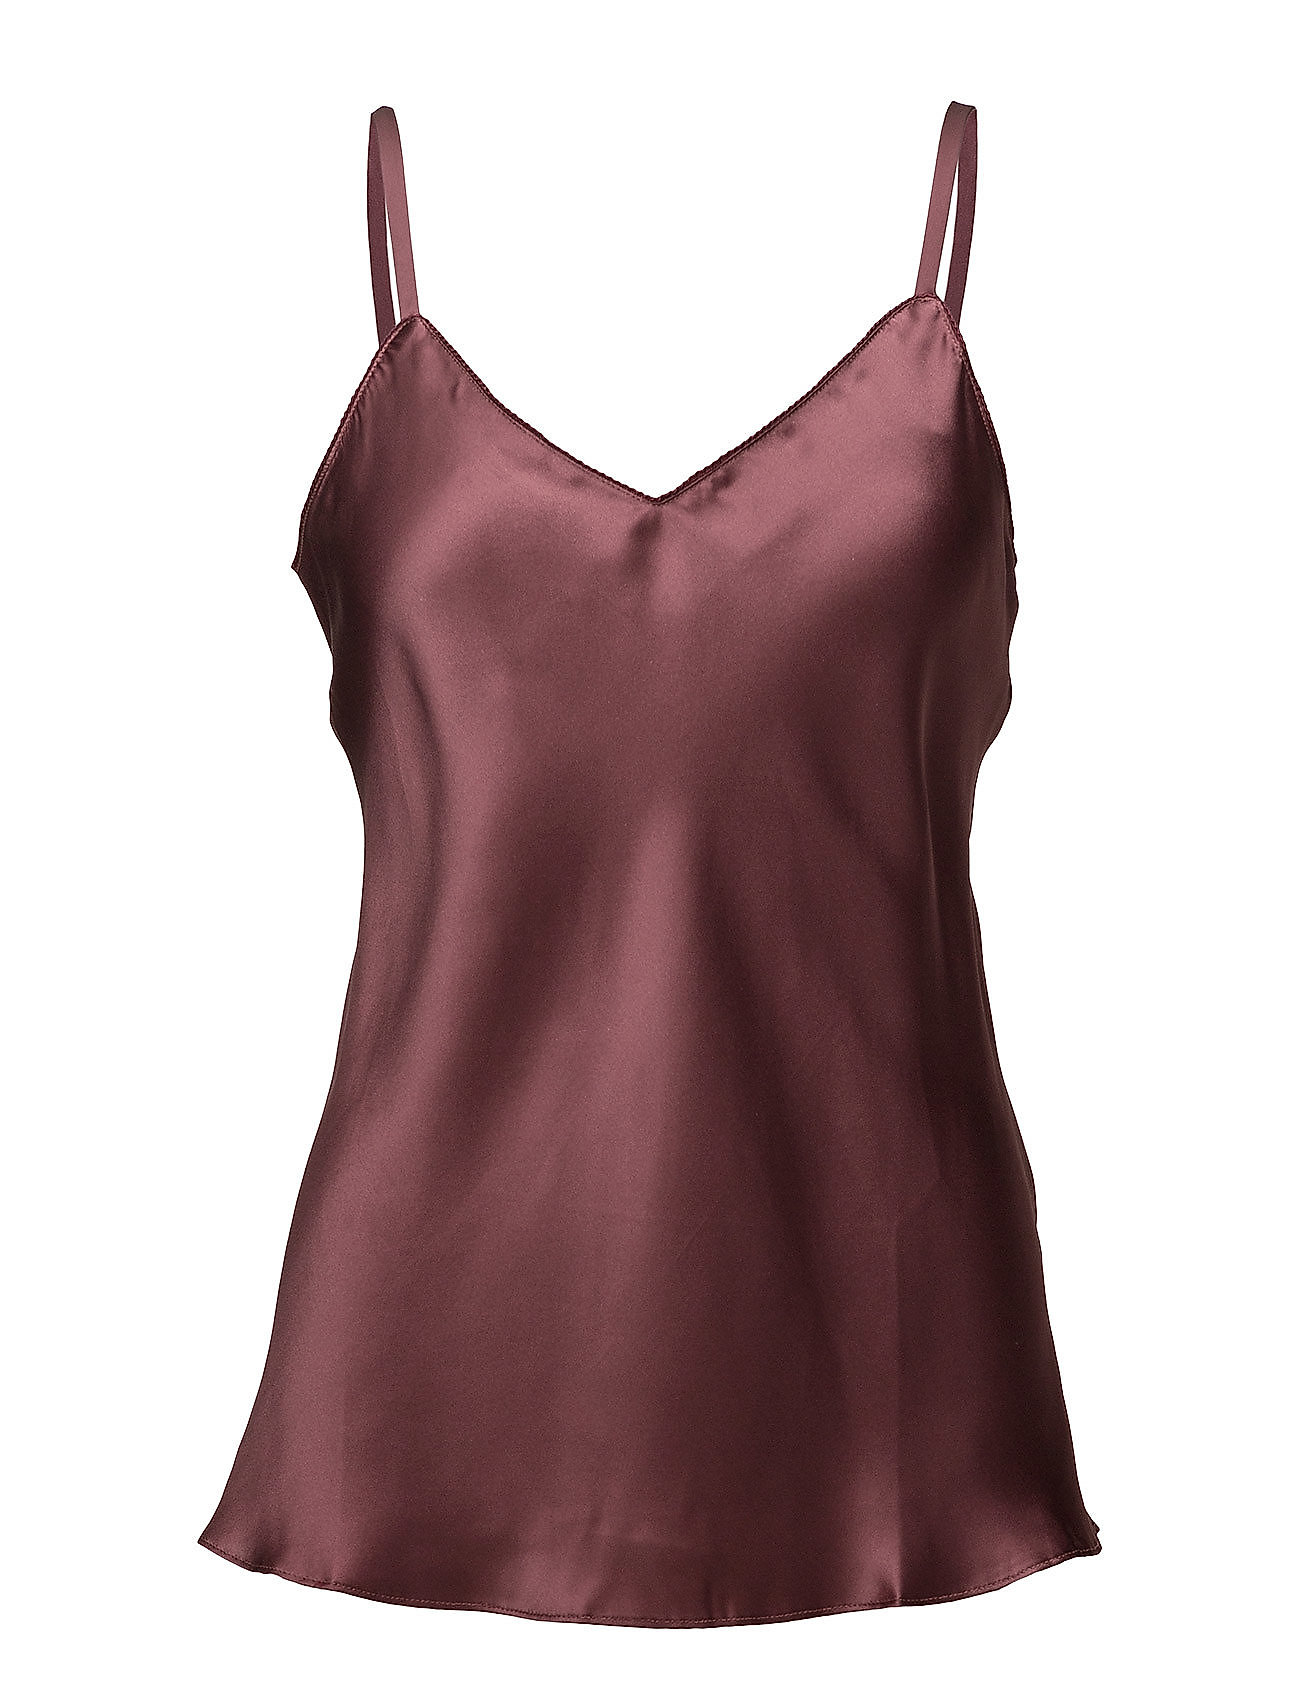 lady avenue Camisole på boozt.com dk